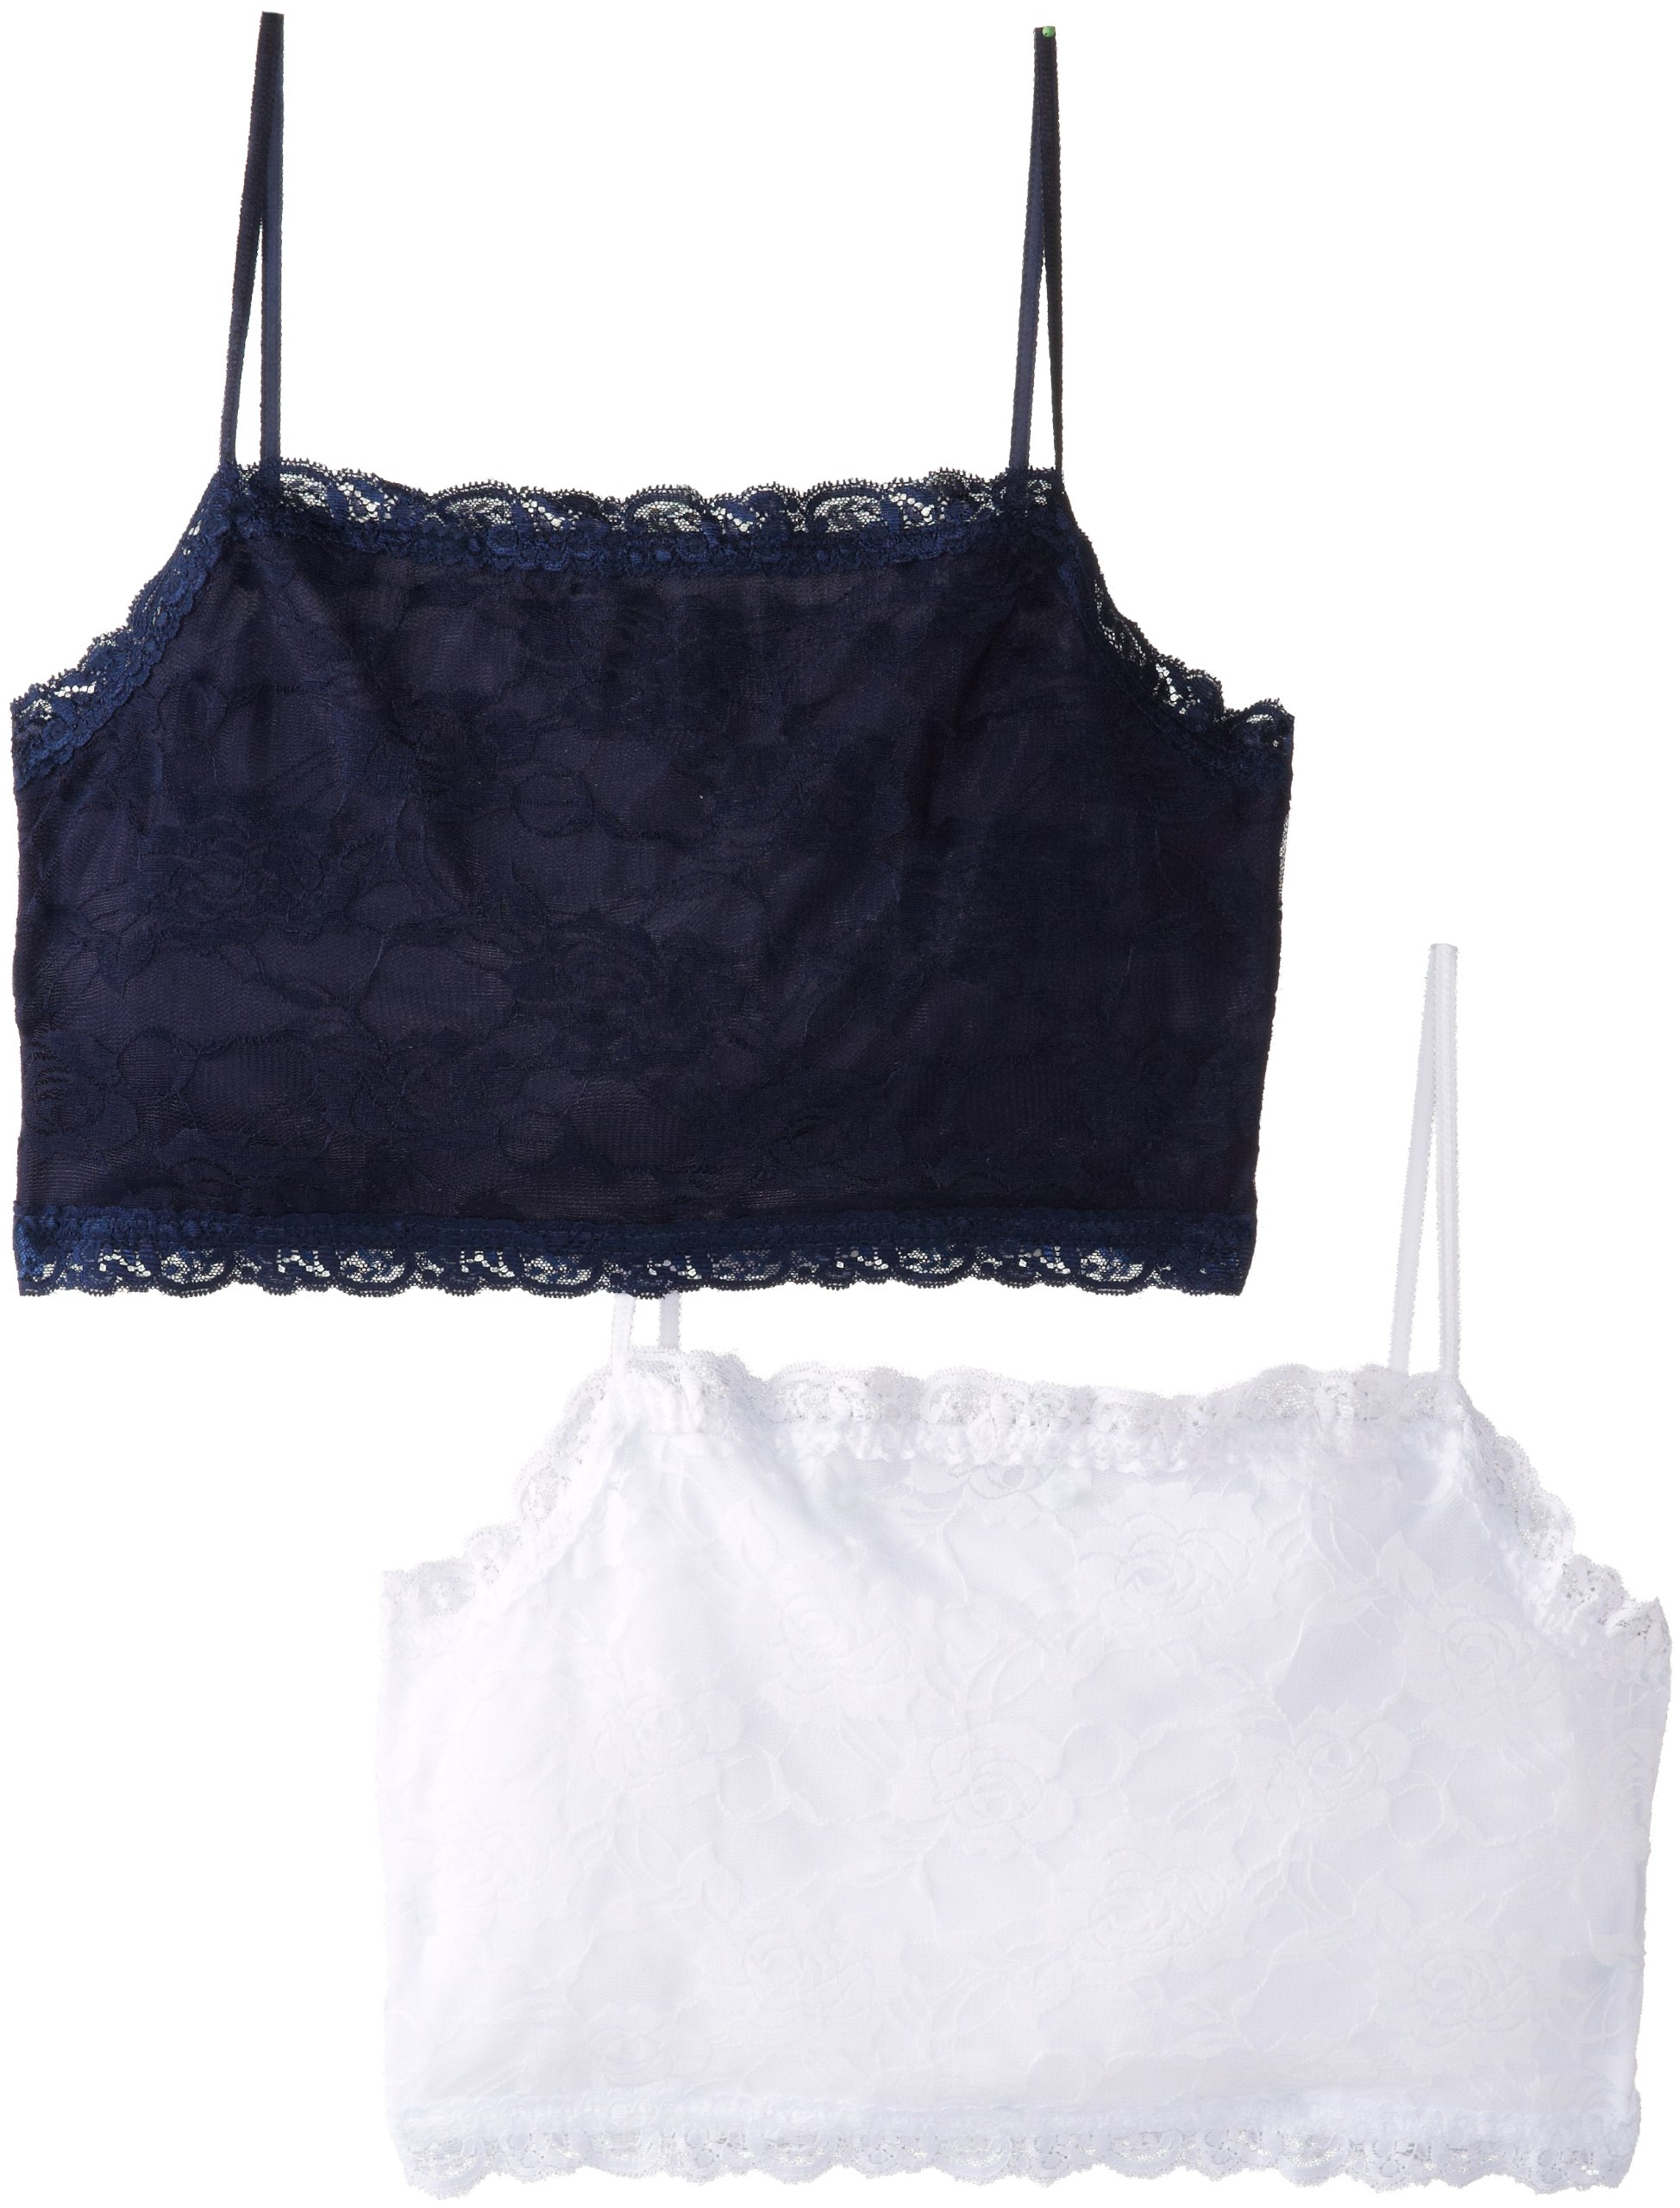 PURE STYLE Girlfriends Plus-Size Camiflage 2-Pack Plus Size Lined Stretch Lace Half Camisole, Navy/White, 3X